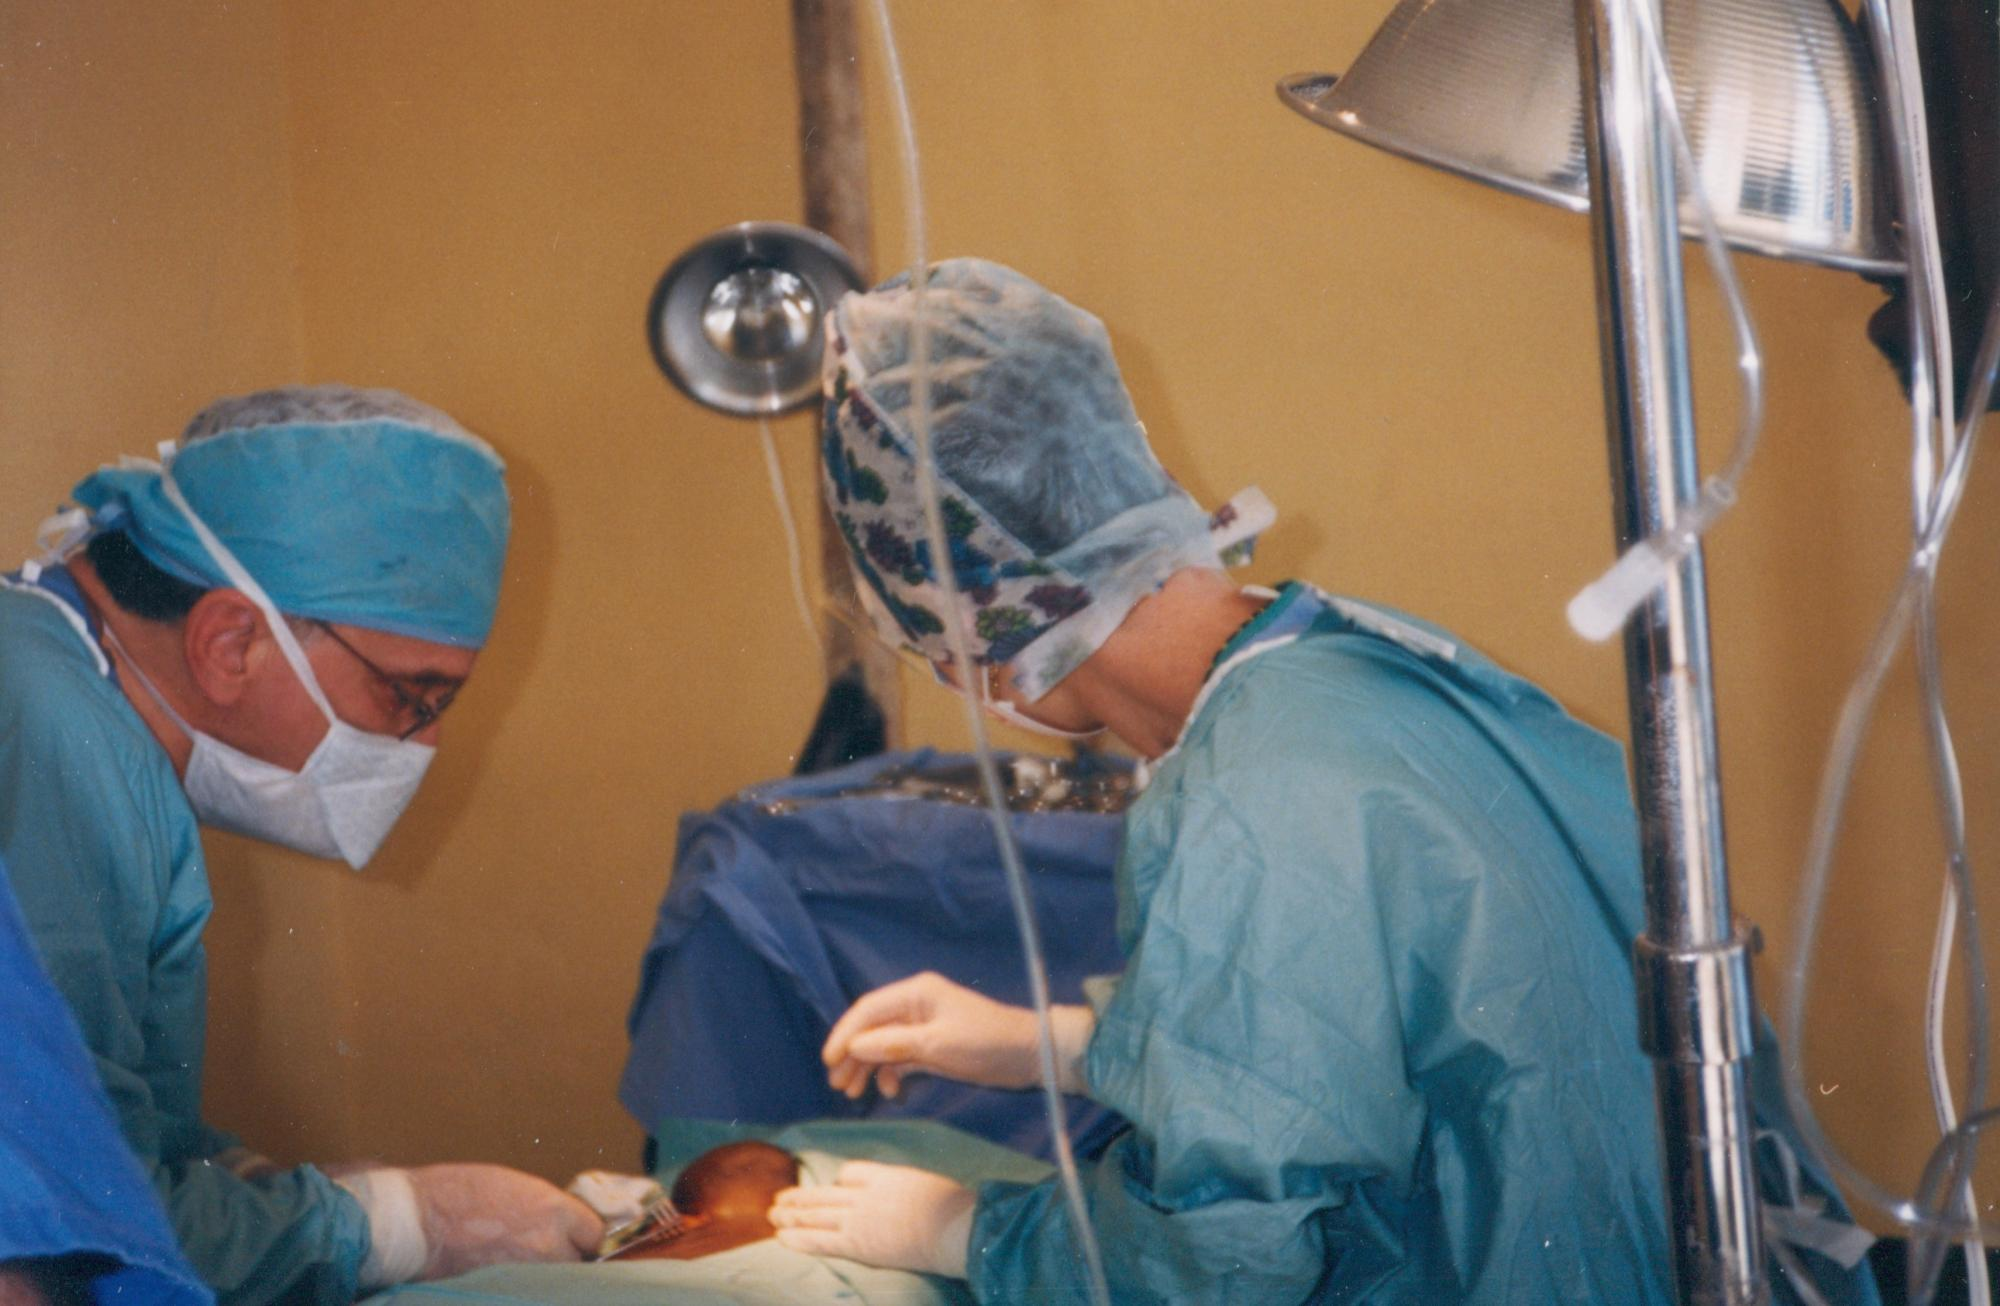 OR_care_Dr_Tony_DeGiovanni_and_Dr_Maureen_Murphy_circa_2000_image26.jpg